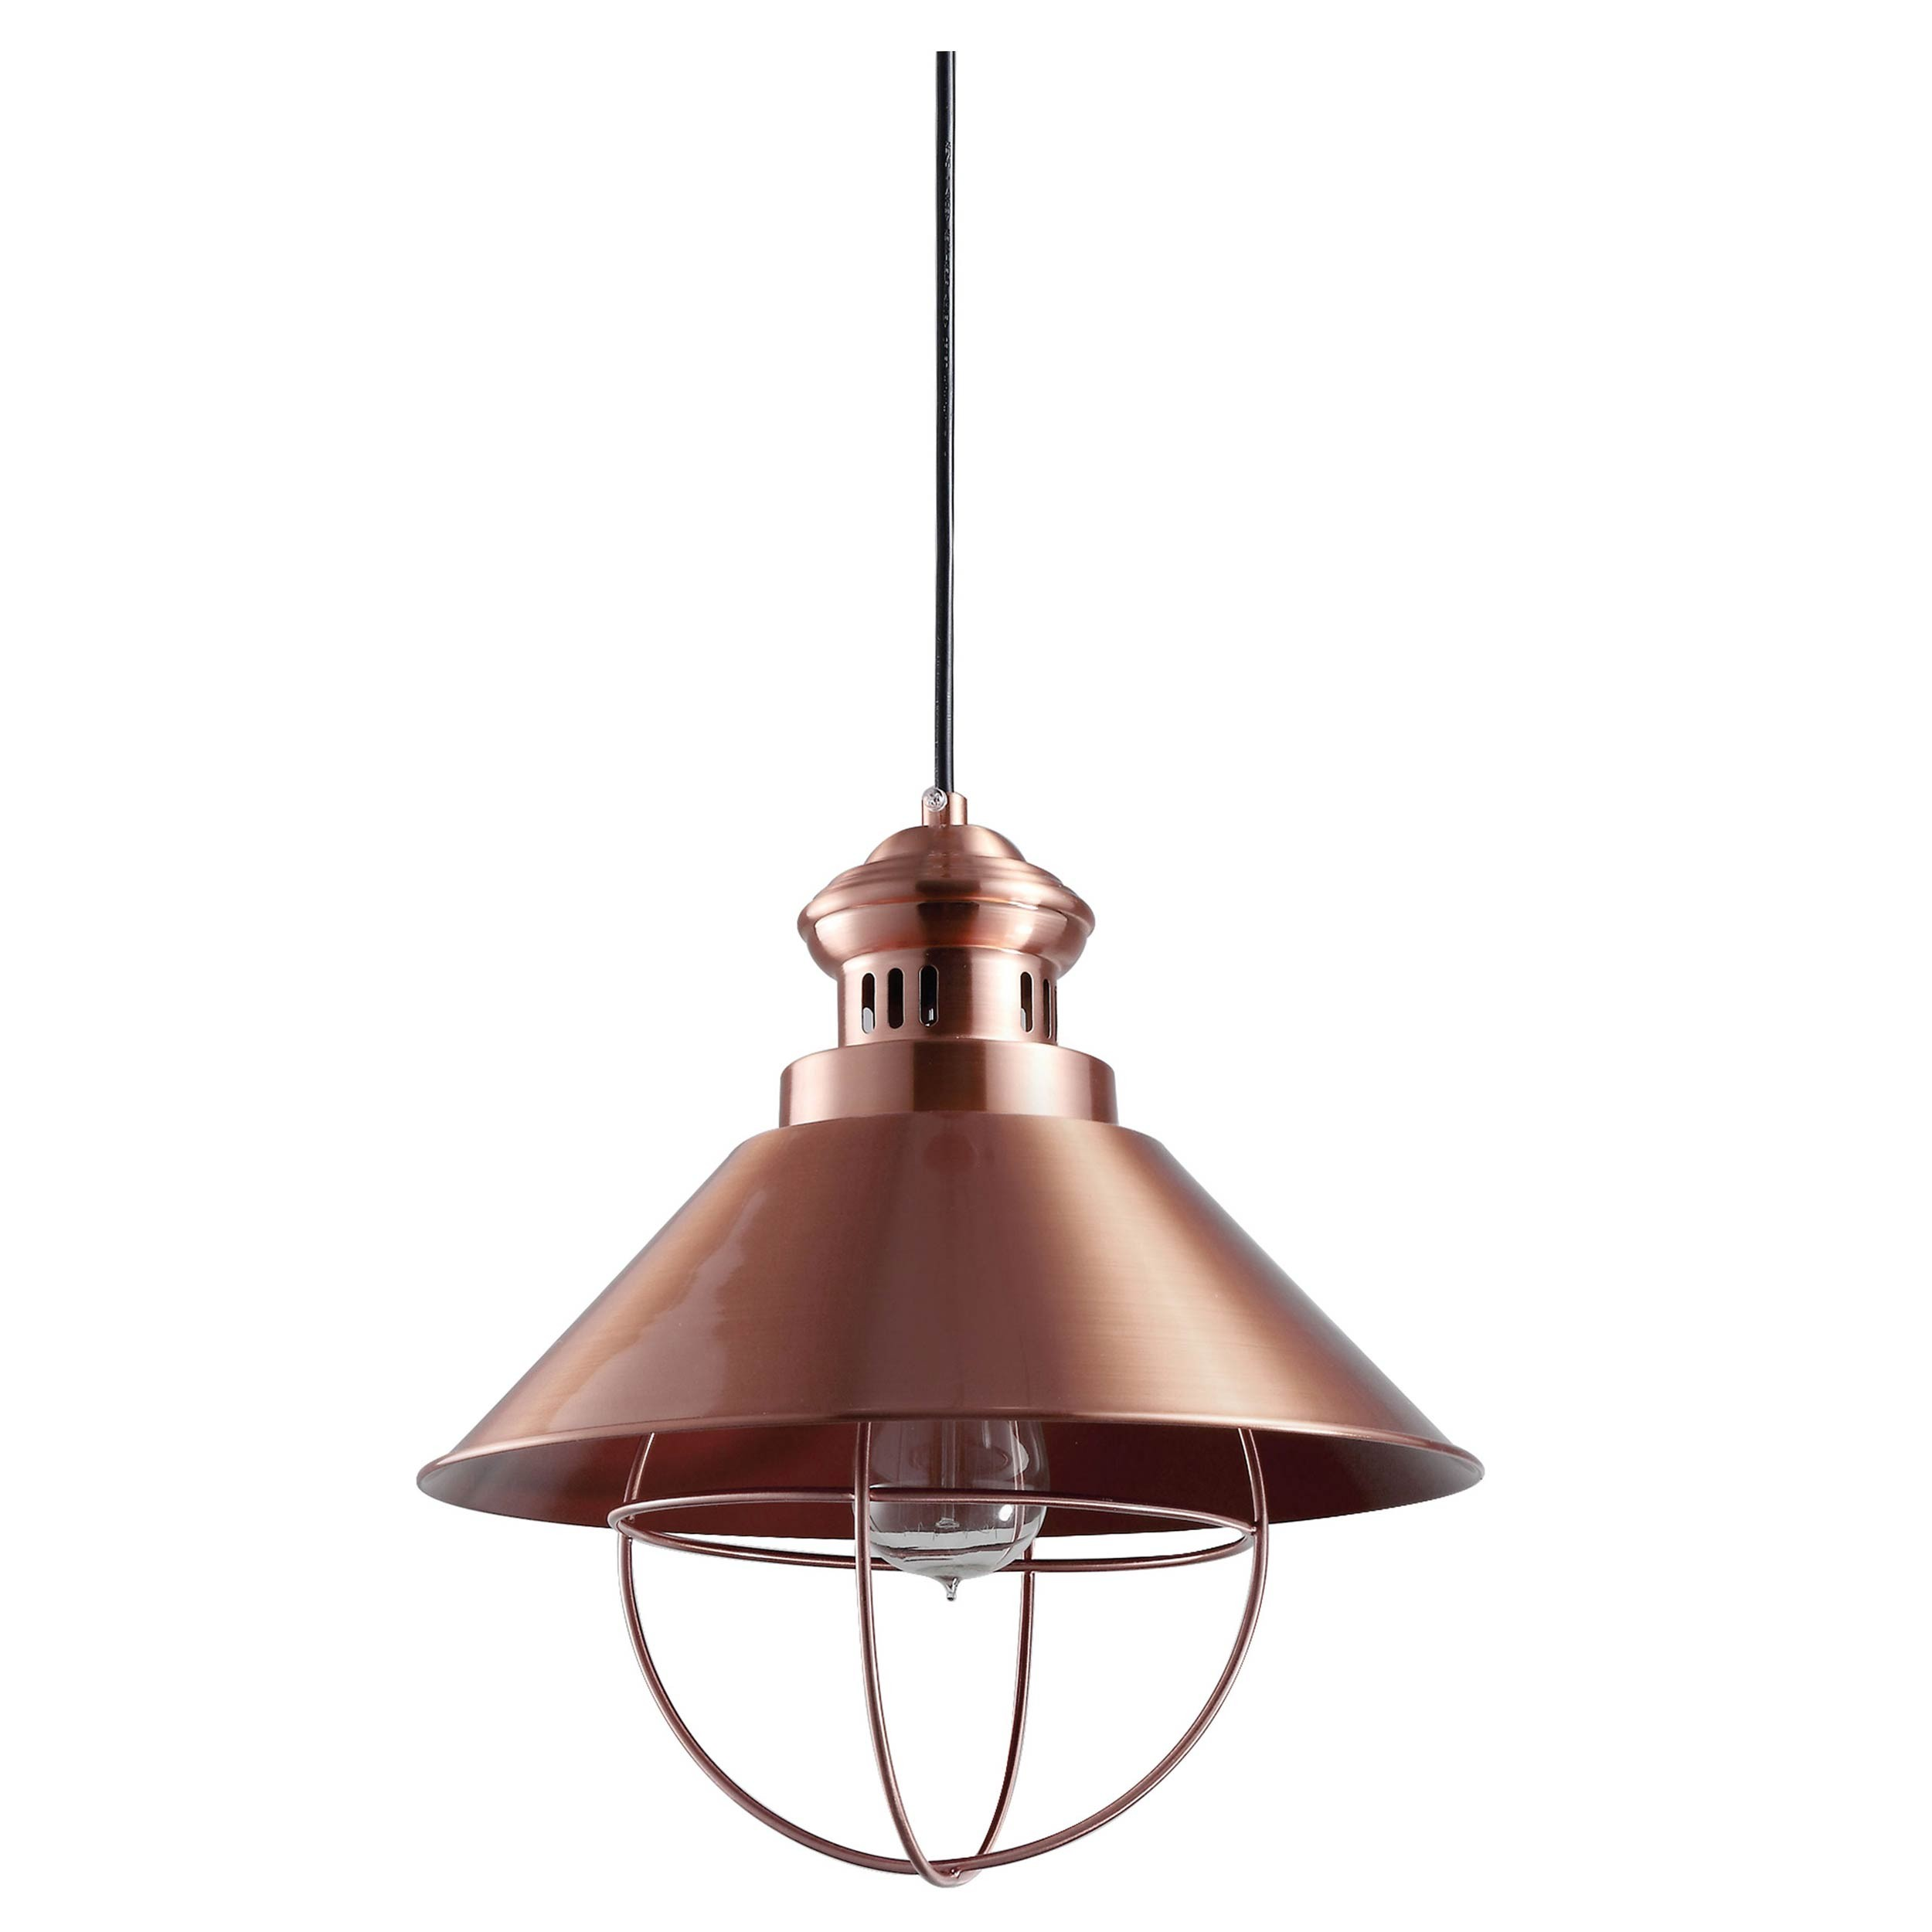 Lampe Suspension Cuivre Suspension Kitchen Cuivre